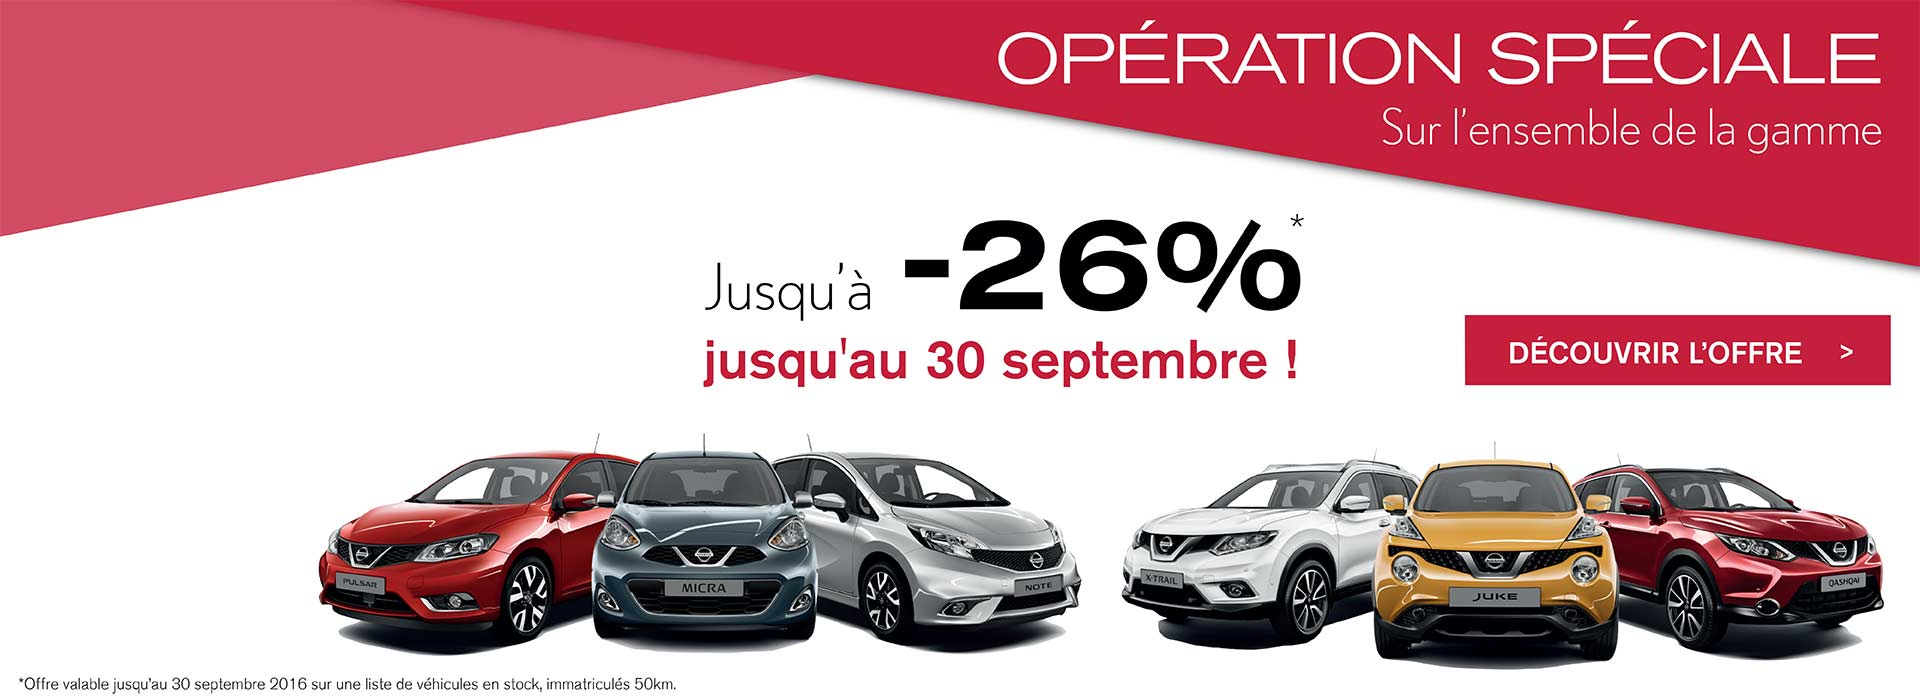 operation speciale nissan